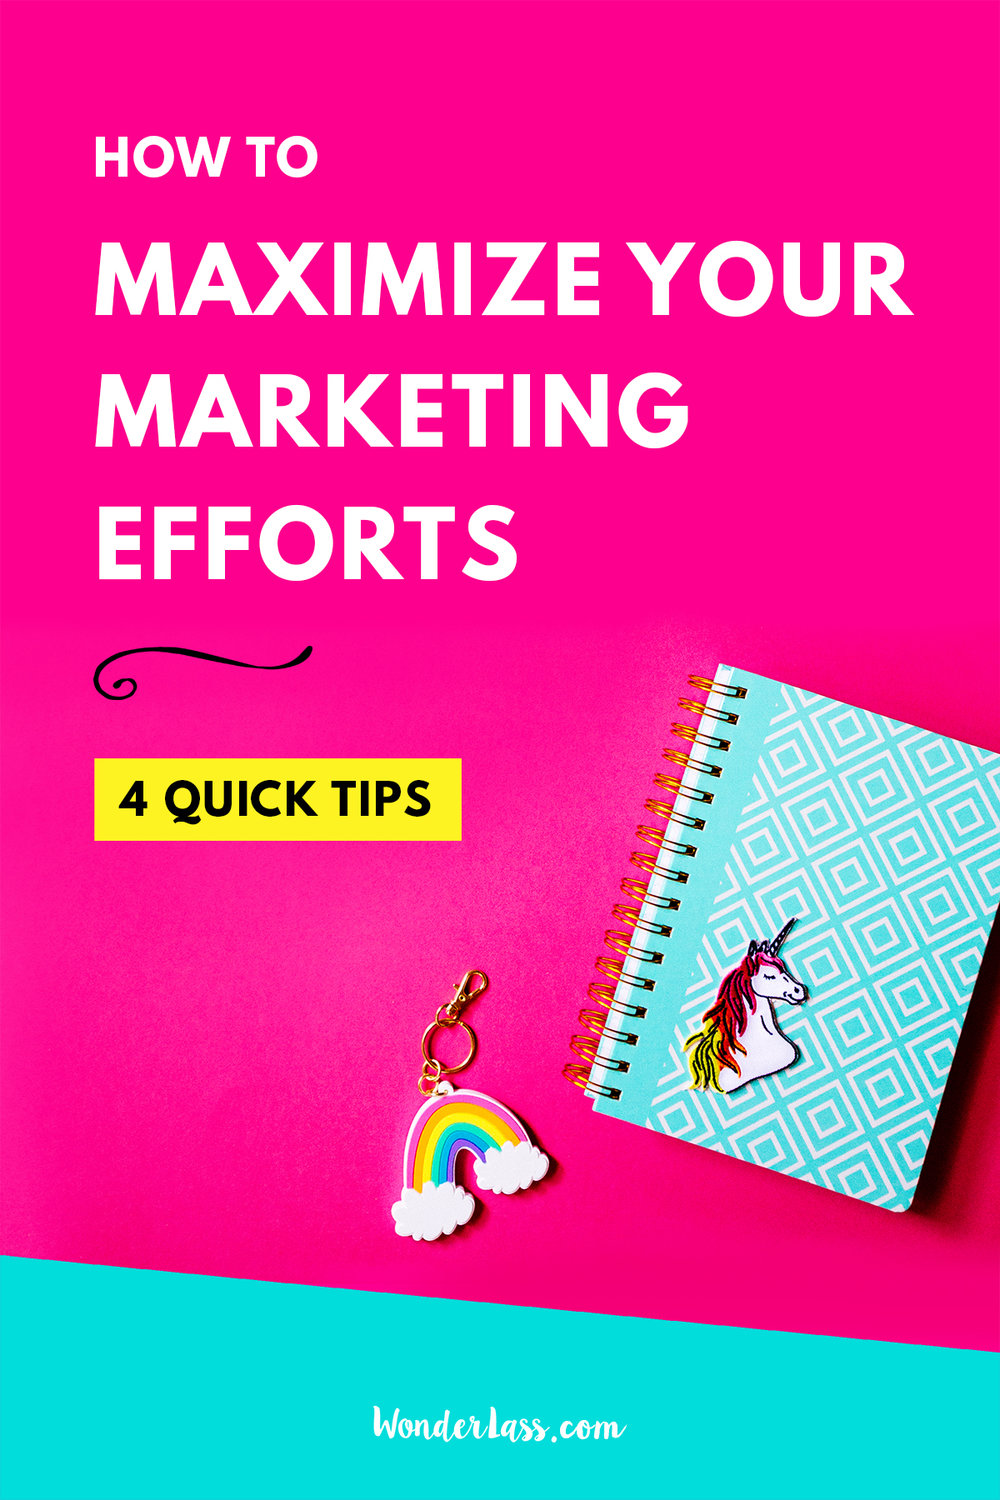 4 Quick Tips to Maximize Your Marketing Efforts | want to grow your audience and your income? Learn how to marketing your business more effectively!